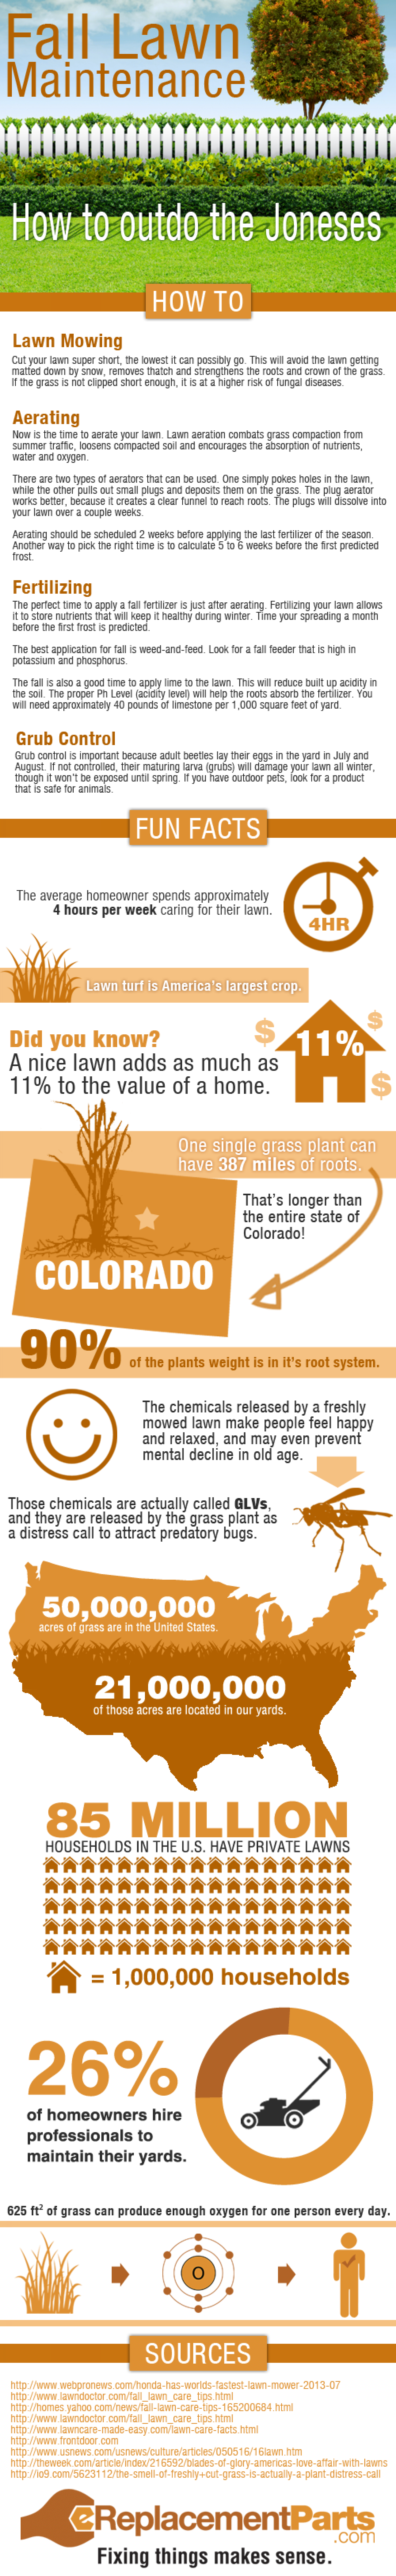 Fall Lawn Maintenance Infographic